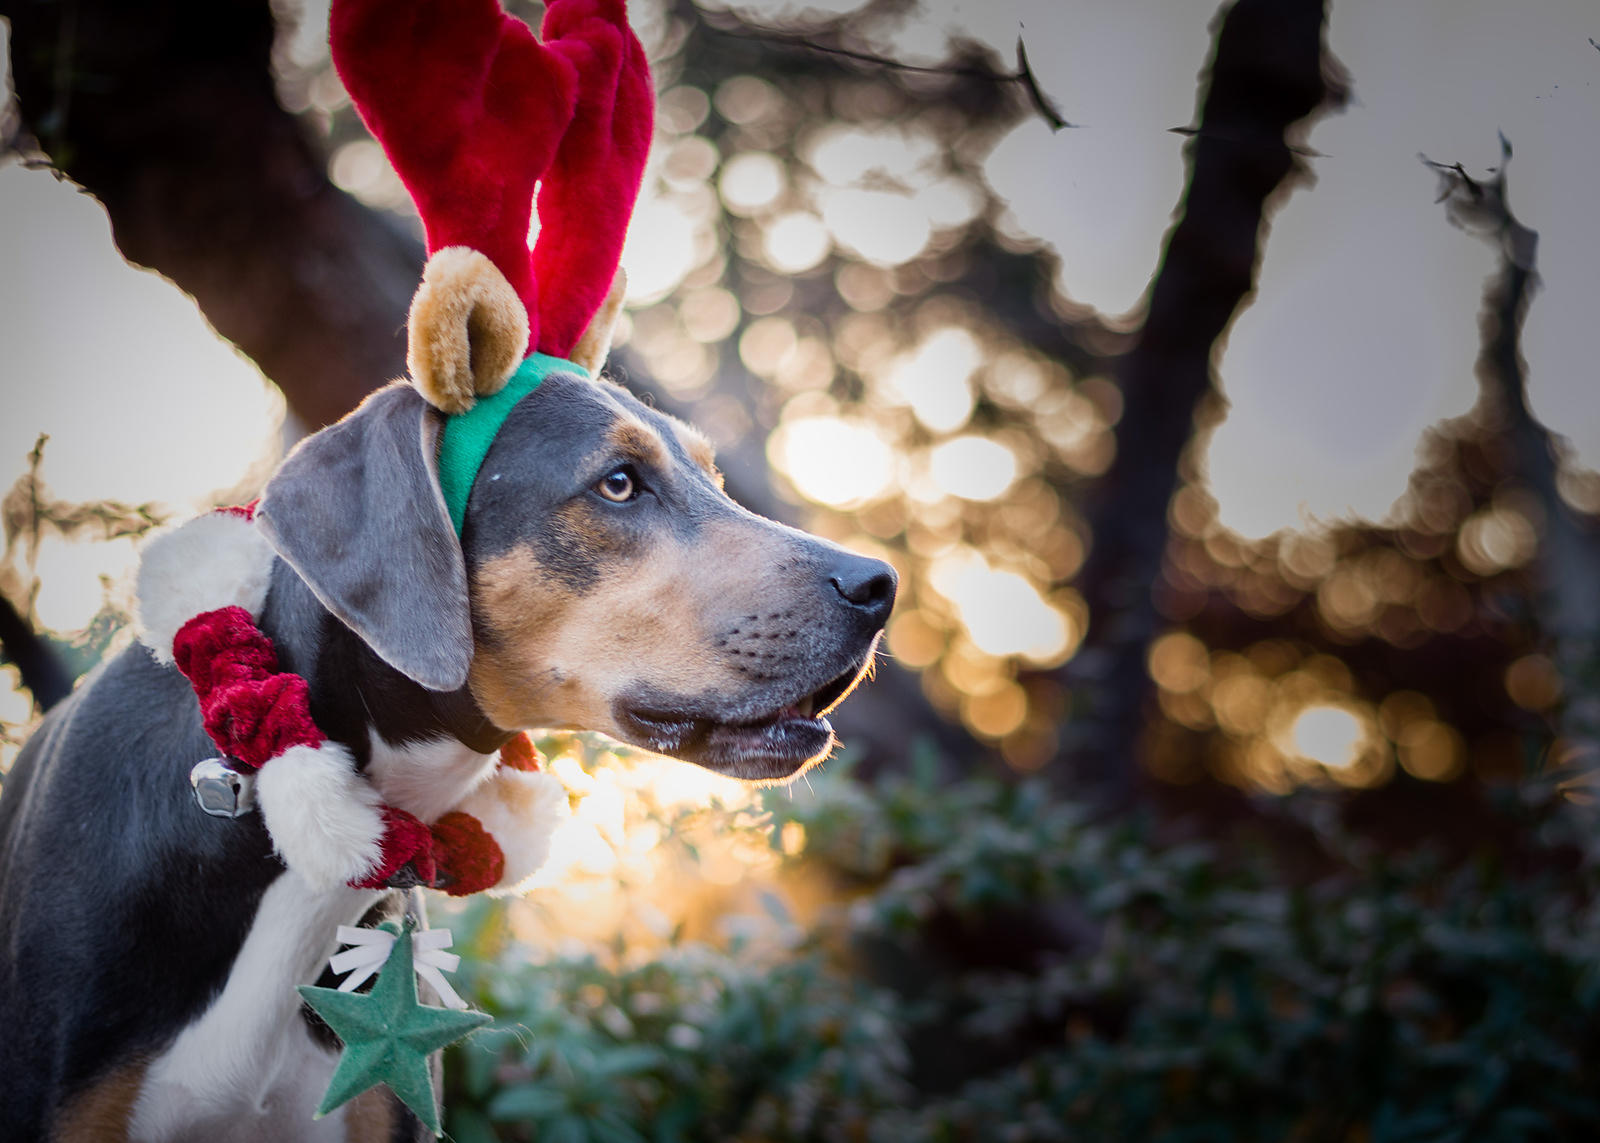 animal photography (dog) of a coonhound costumed for Christmas